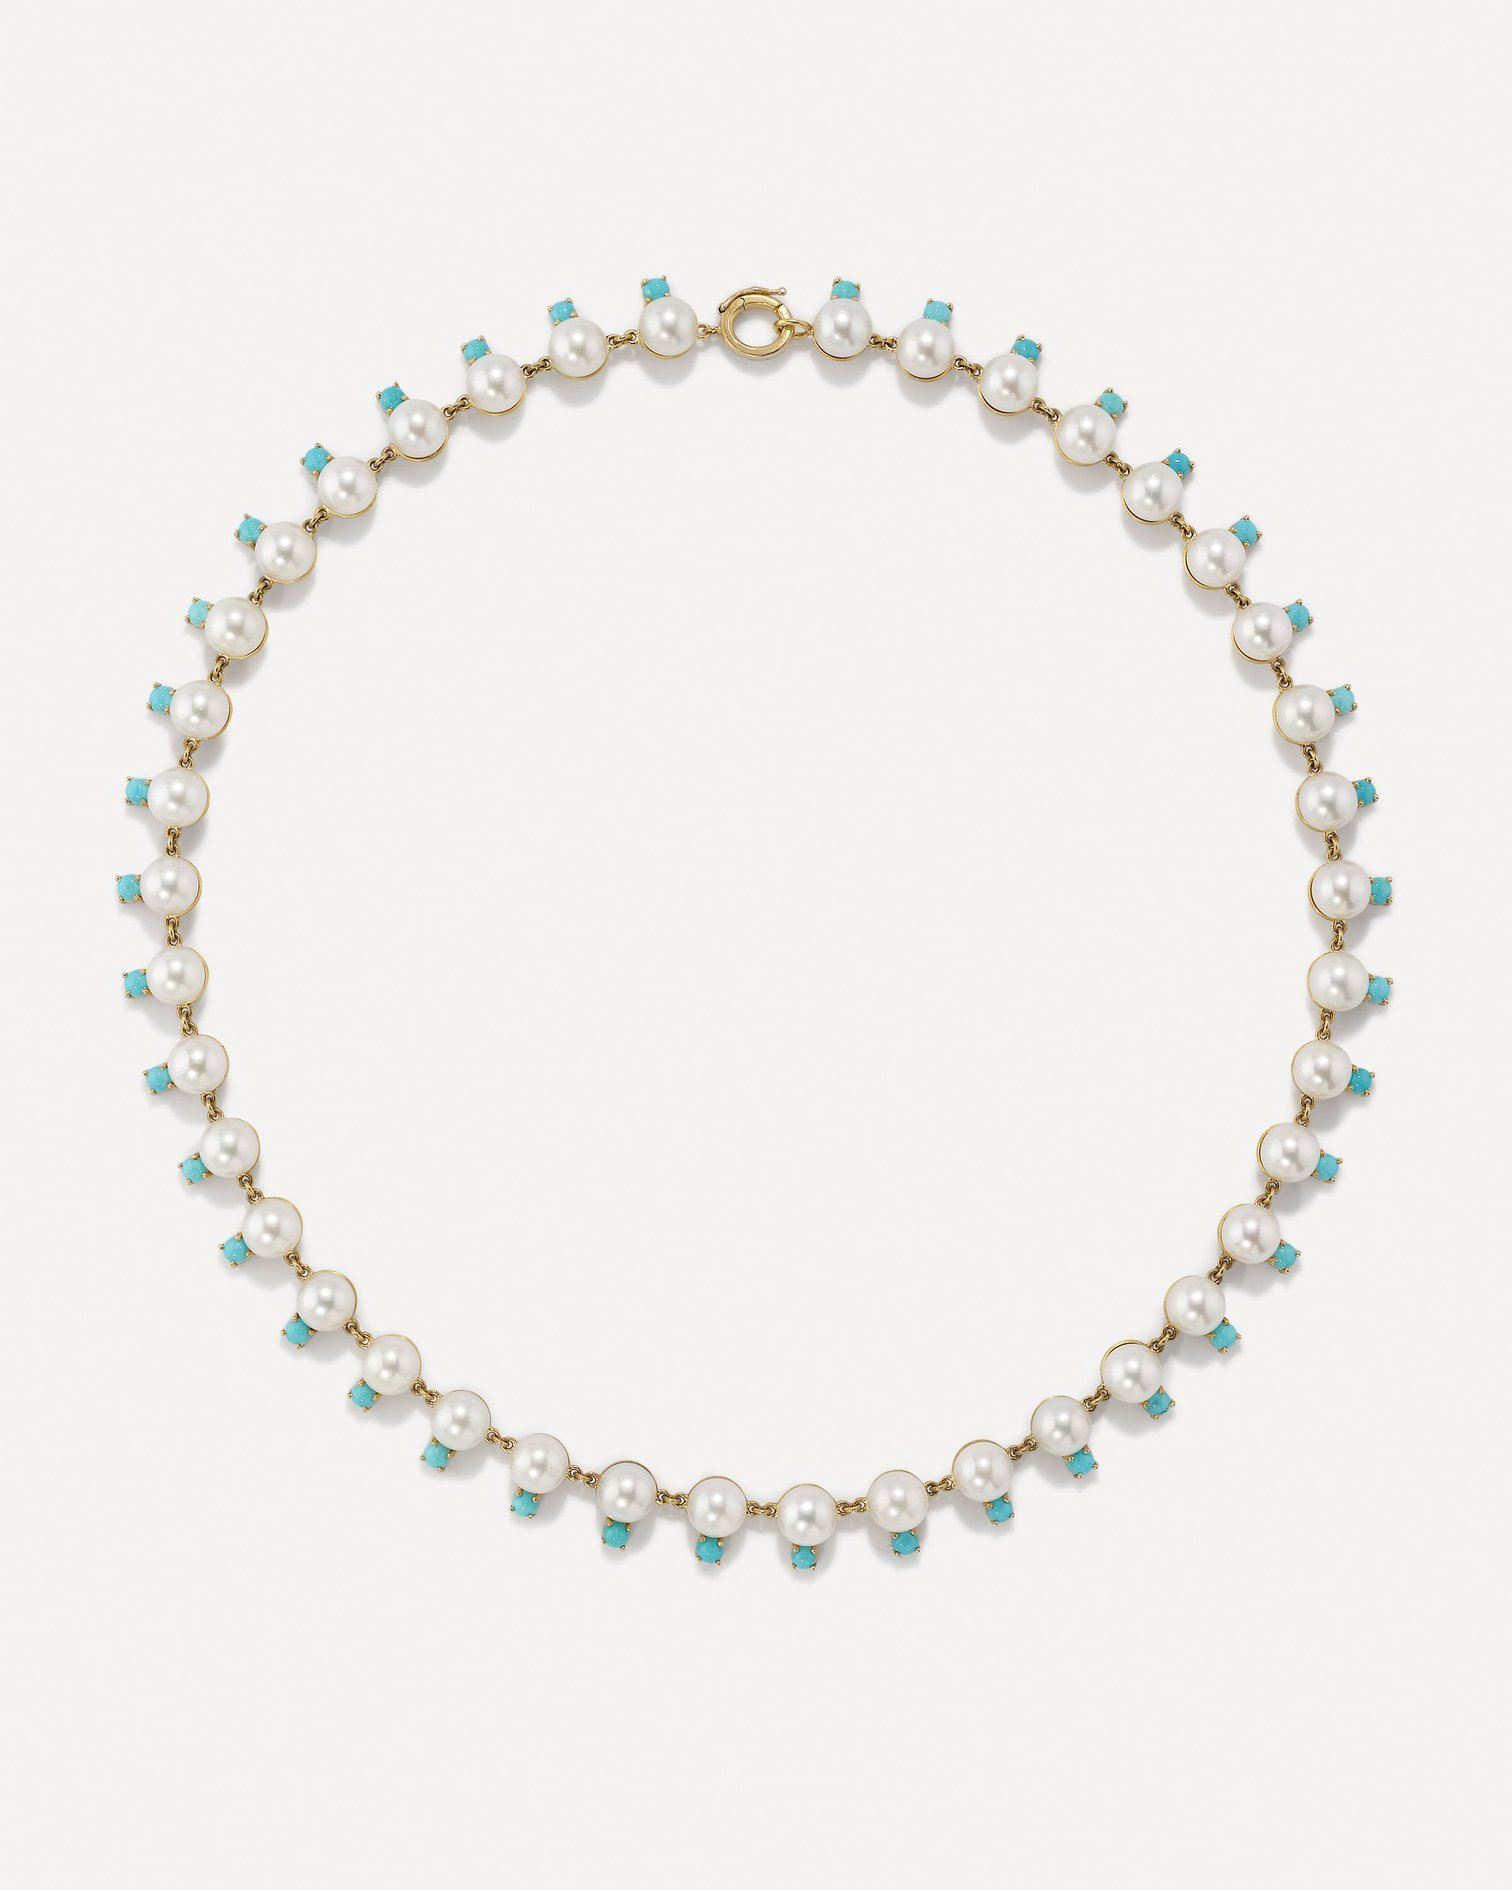 Irene Neuwirth Pearl and Turquoise Necklace